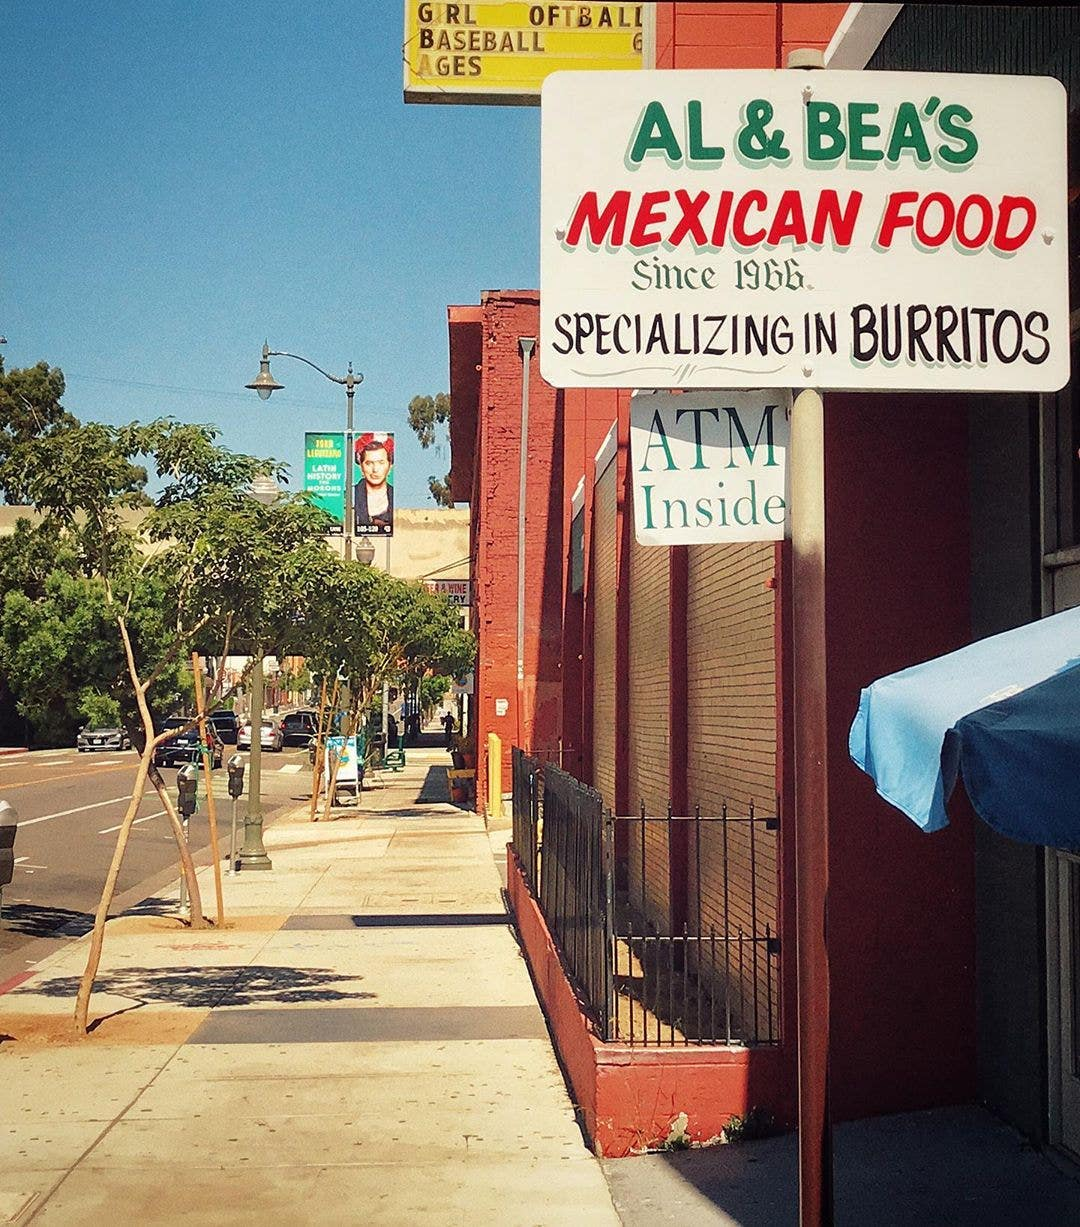 Al and Bea's Mexican Food 2020